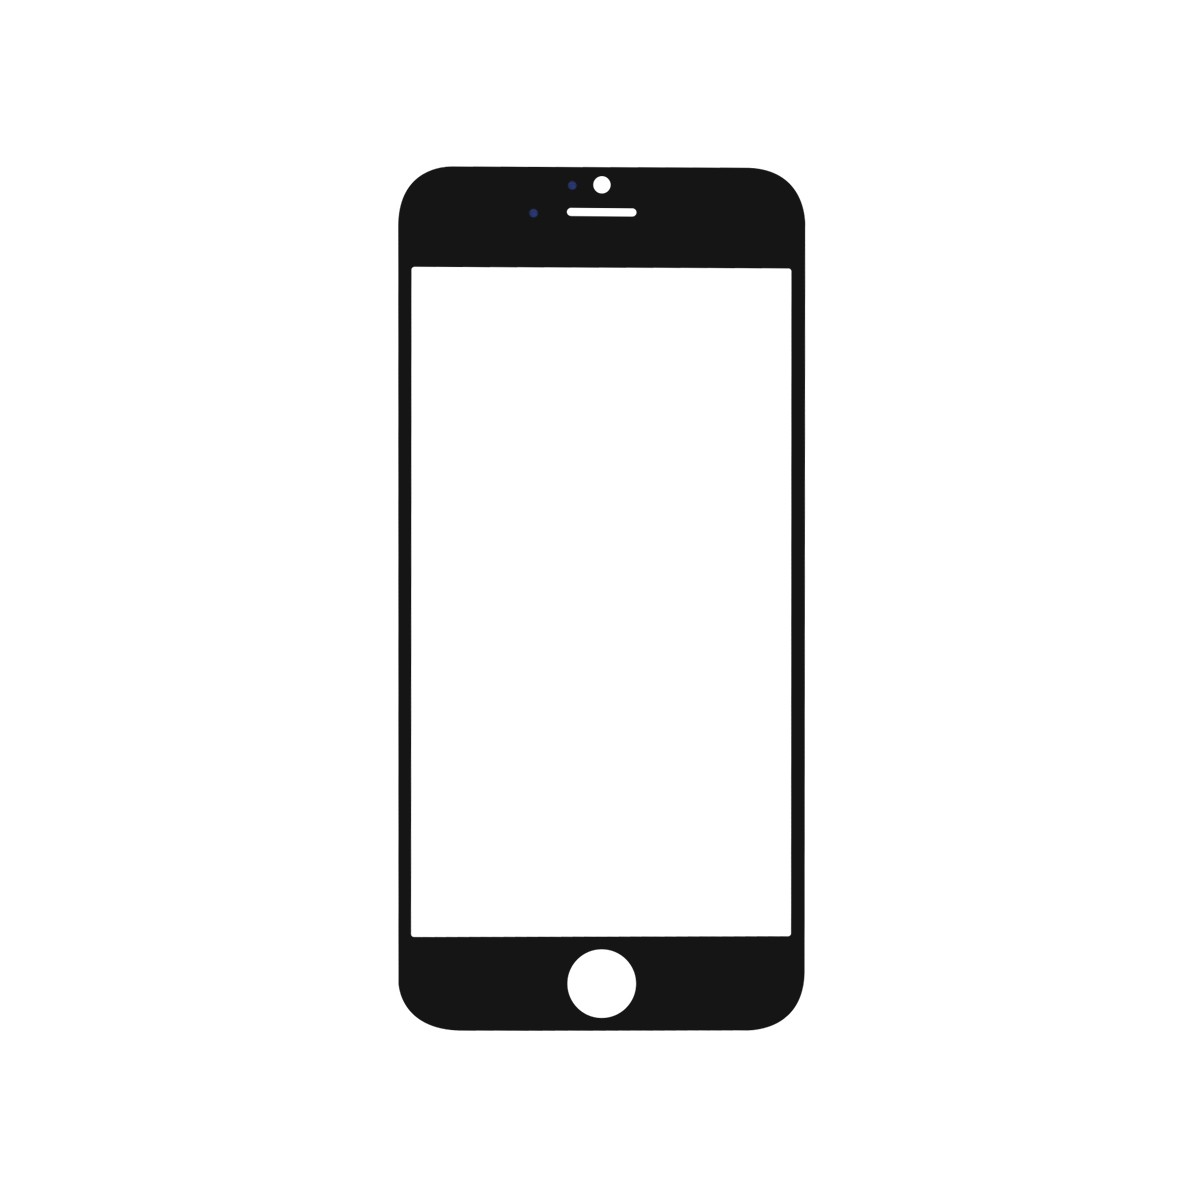 iPhone 6 Black Display Assembly with Front Camera and Home